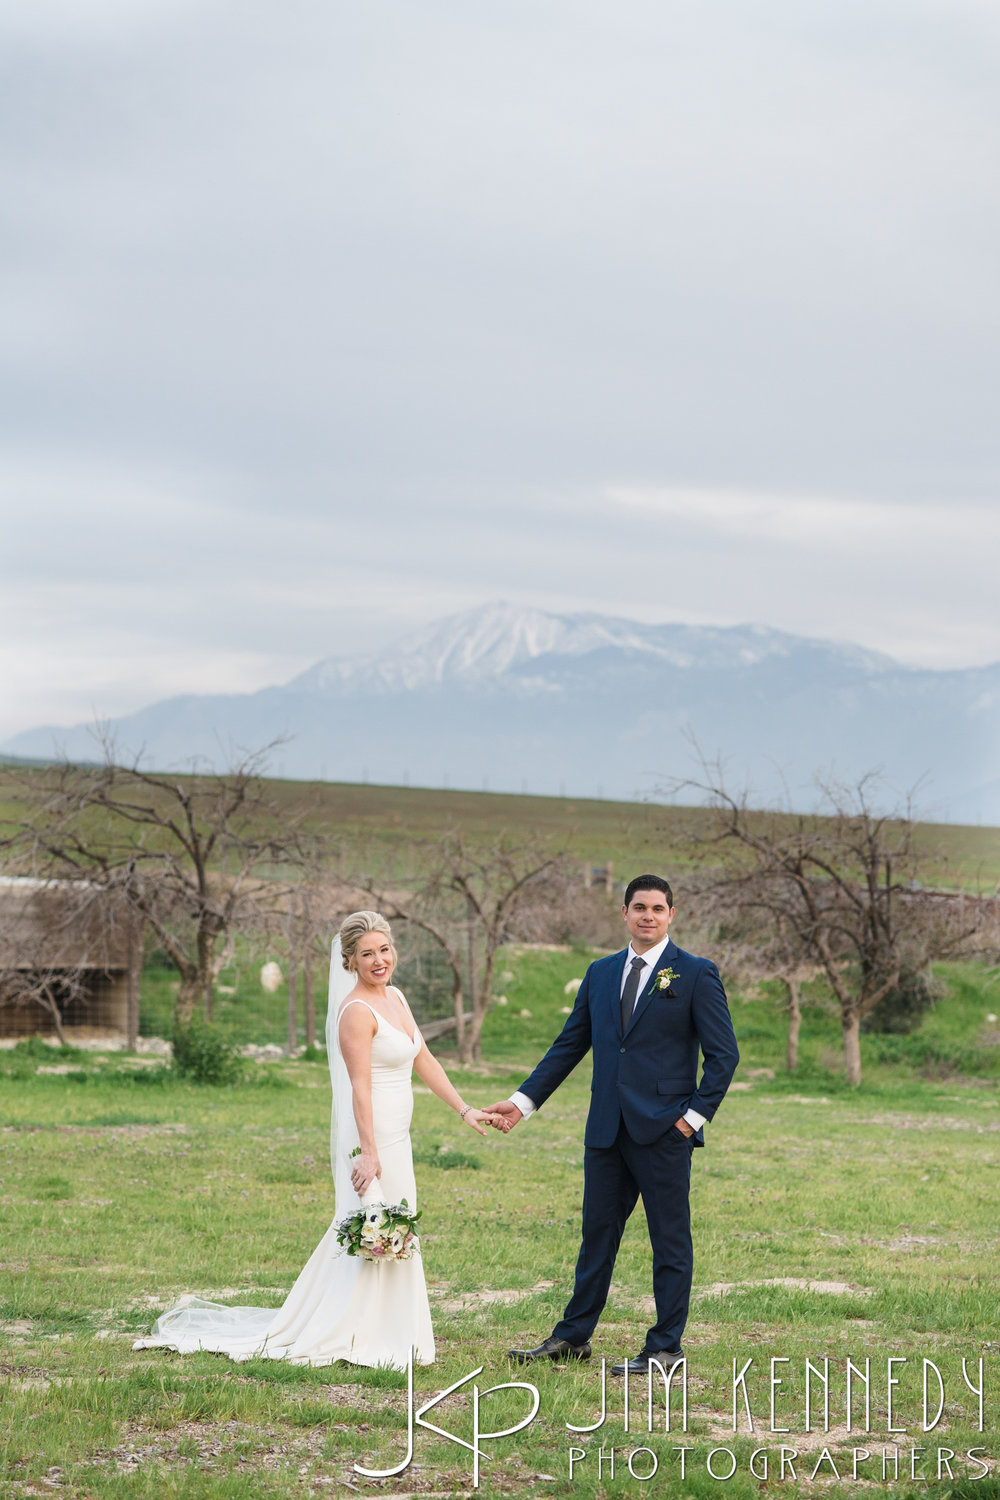 jim_kennedy_photographers_highland_springs_wedding_caitlyn_0141.jpg